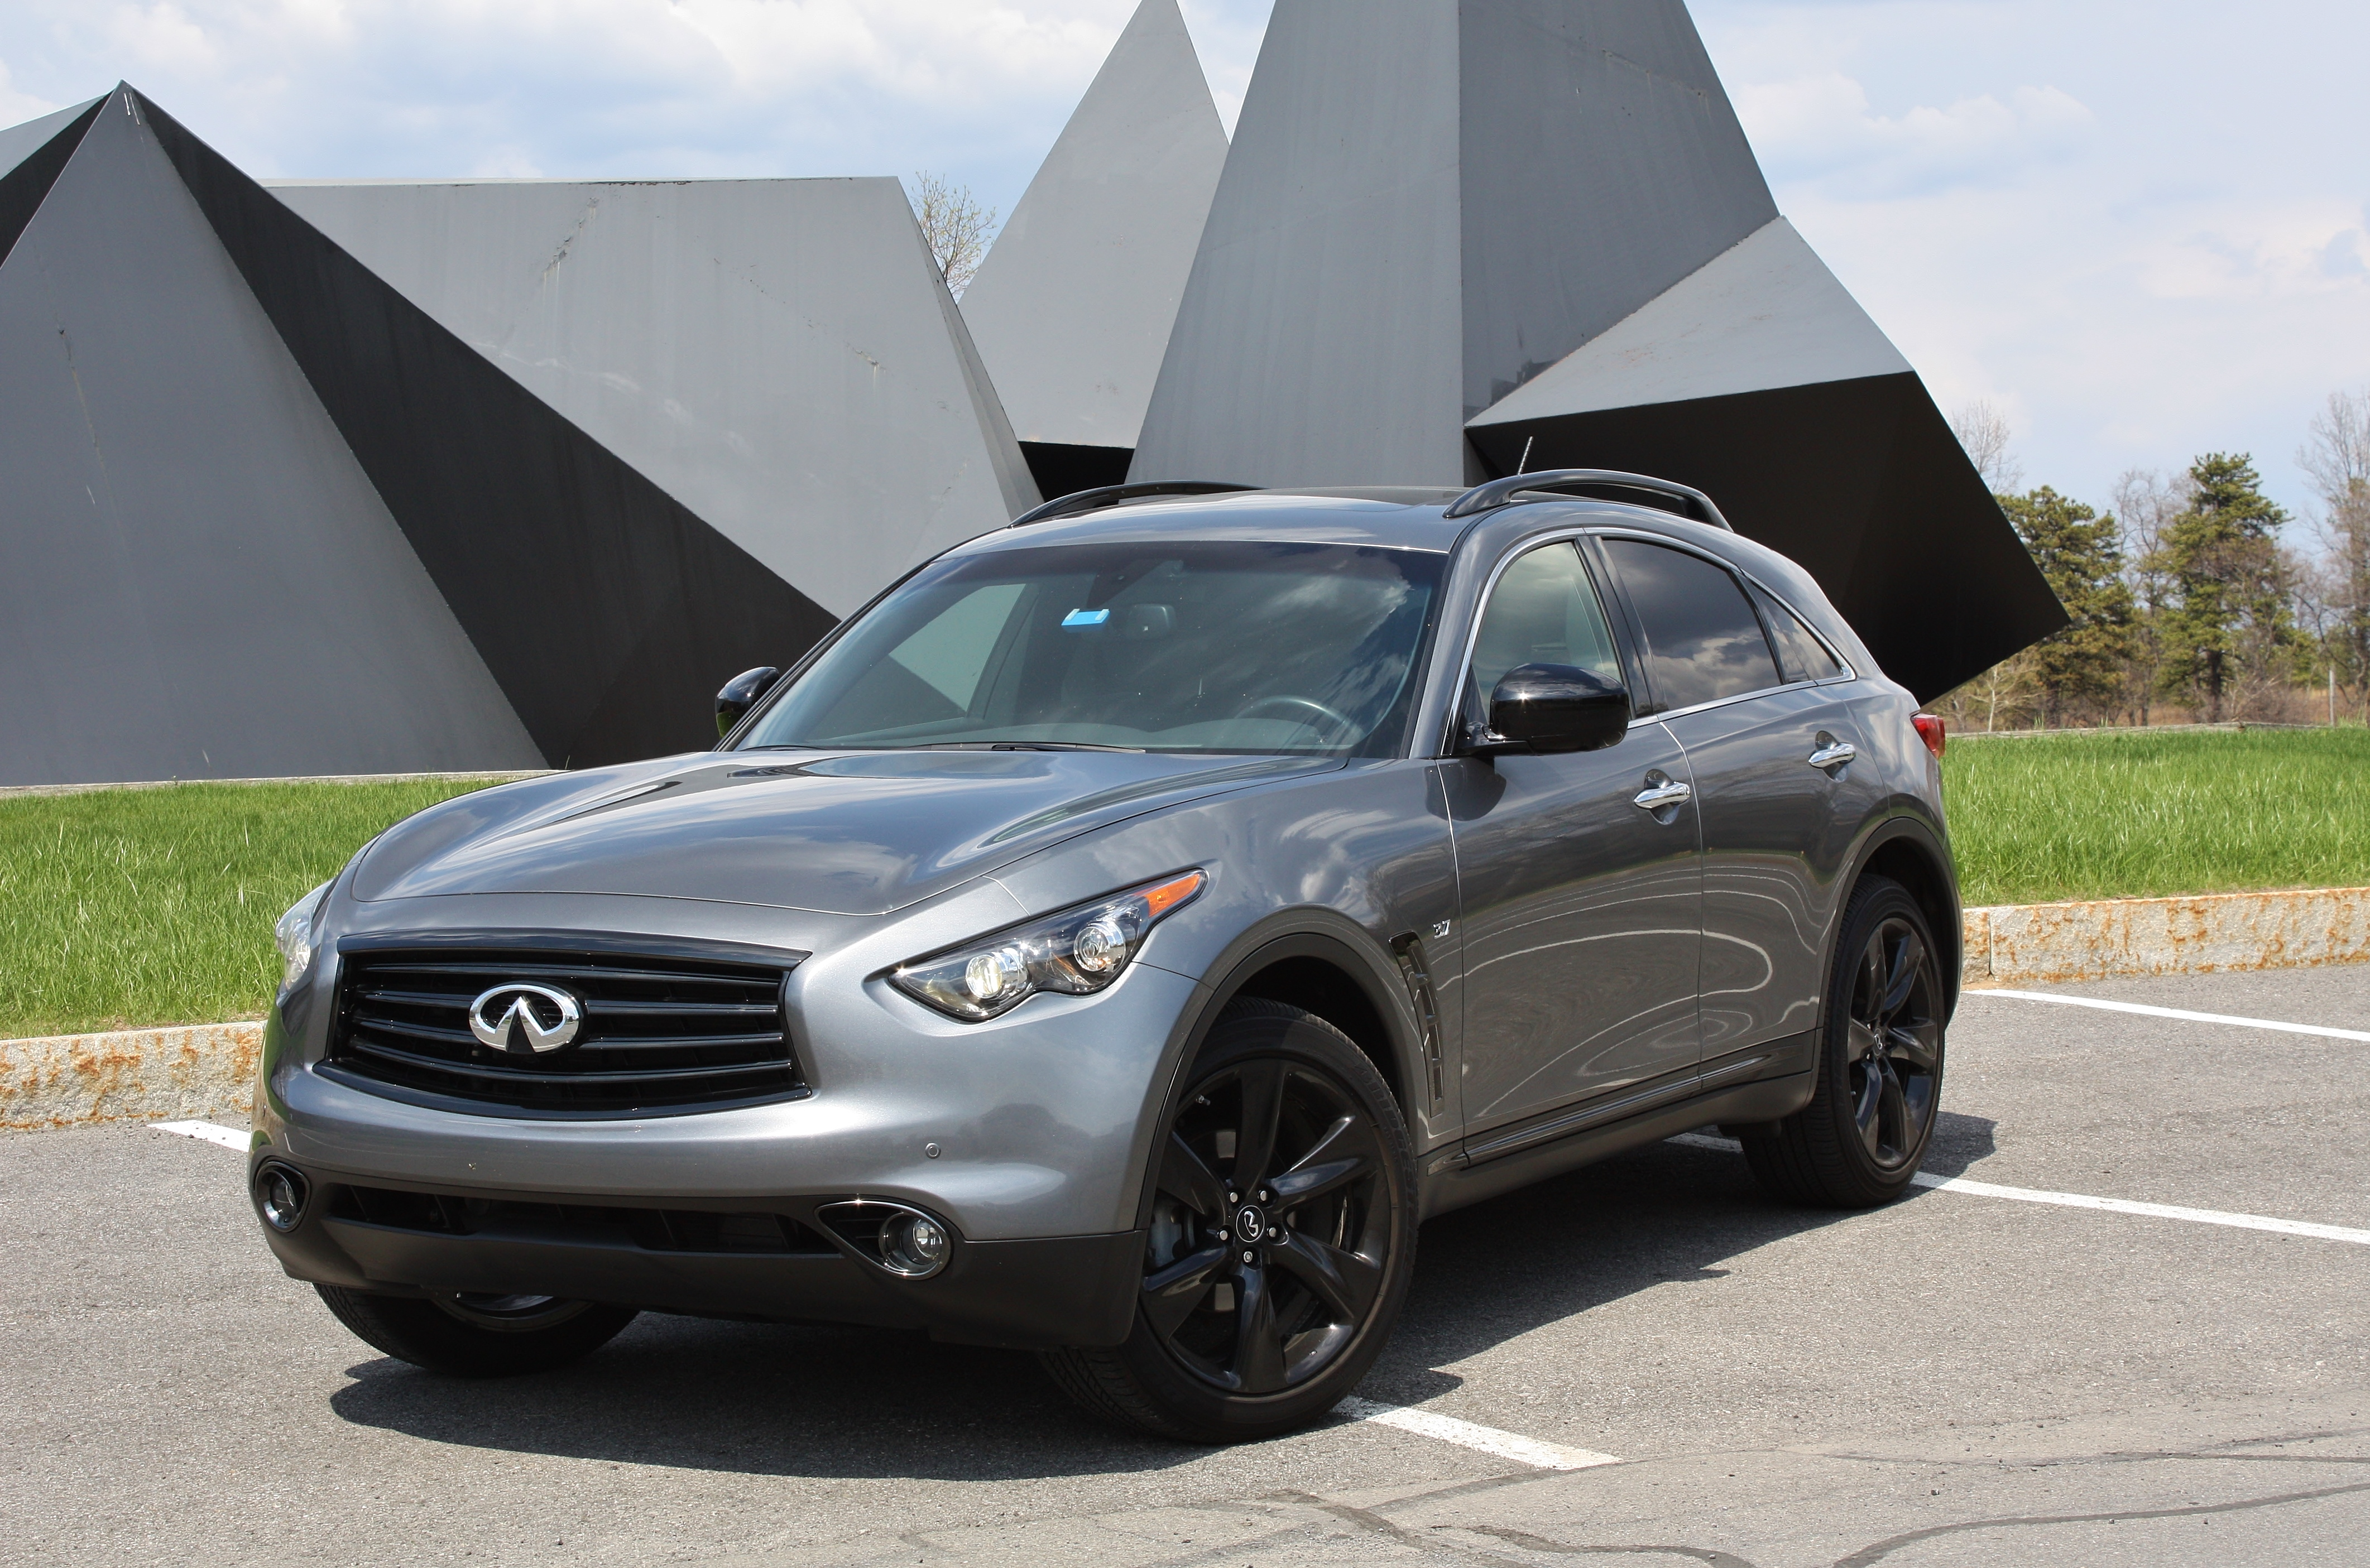 infiniti reviews cars rating and l infinity sedan motor trend dashboard luxe